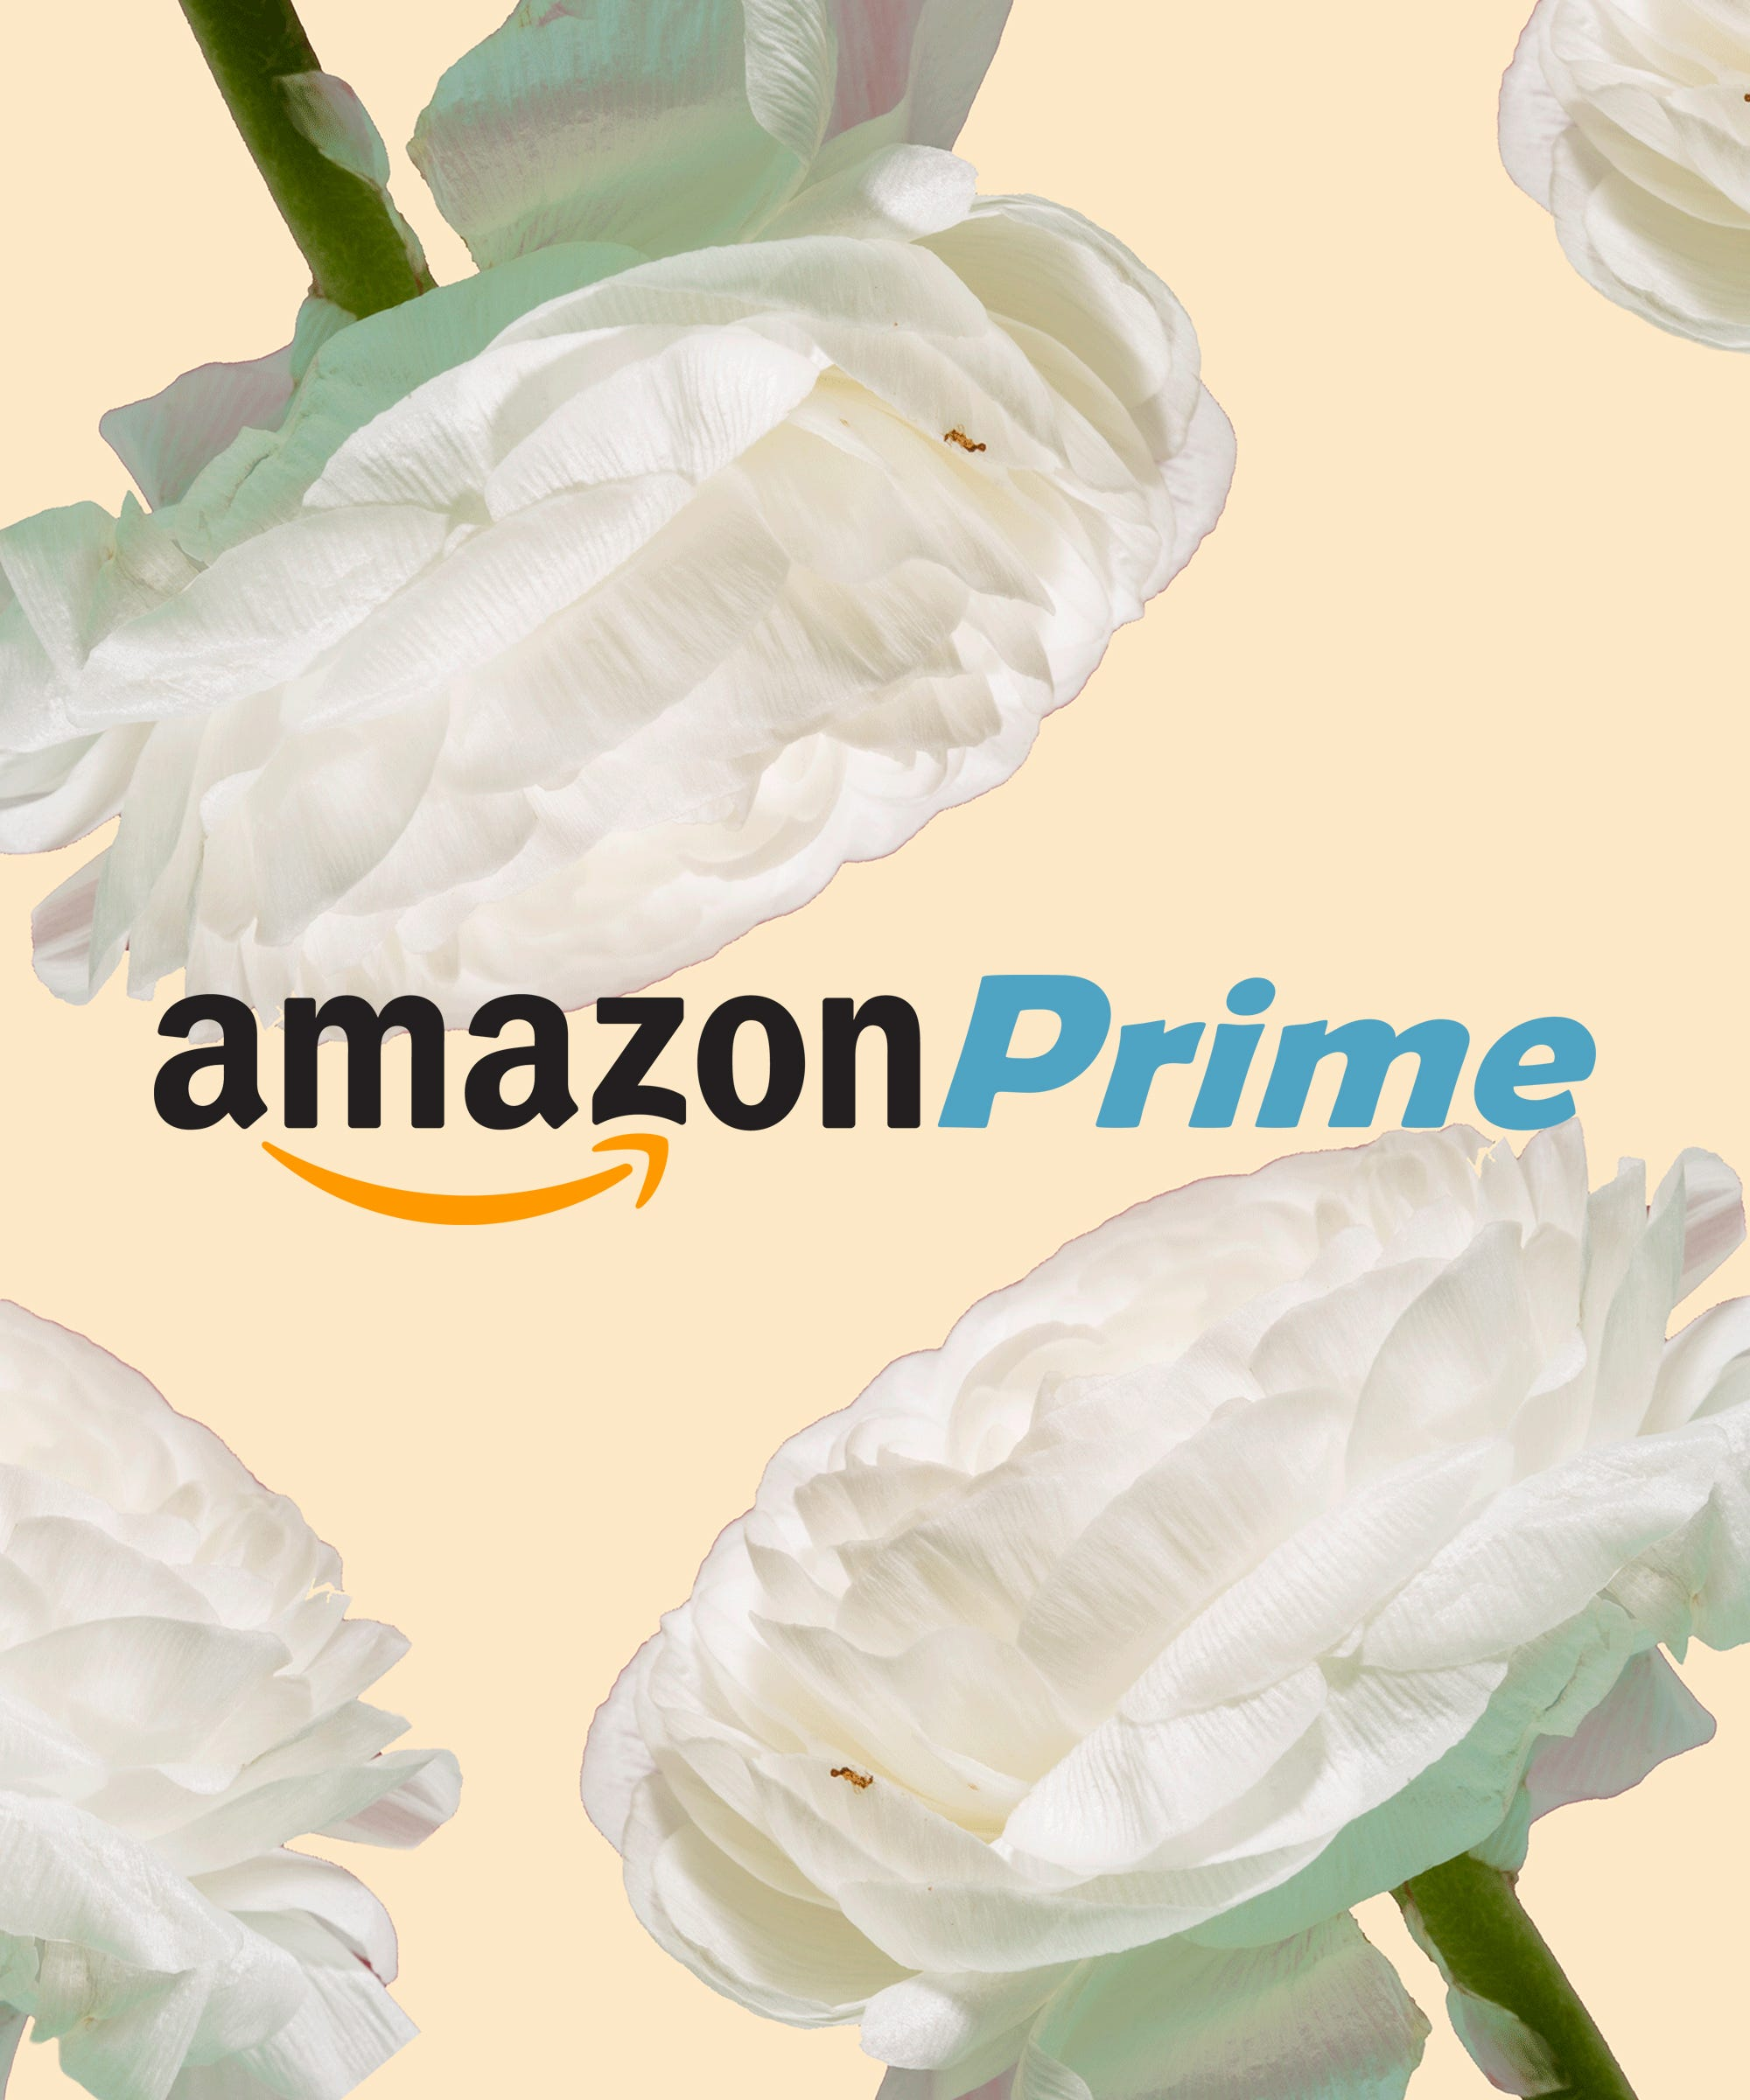 How To Shop Amazon's Prime Day, Without Paying For A Prime Membership